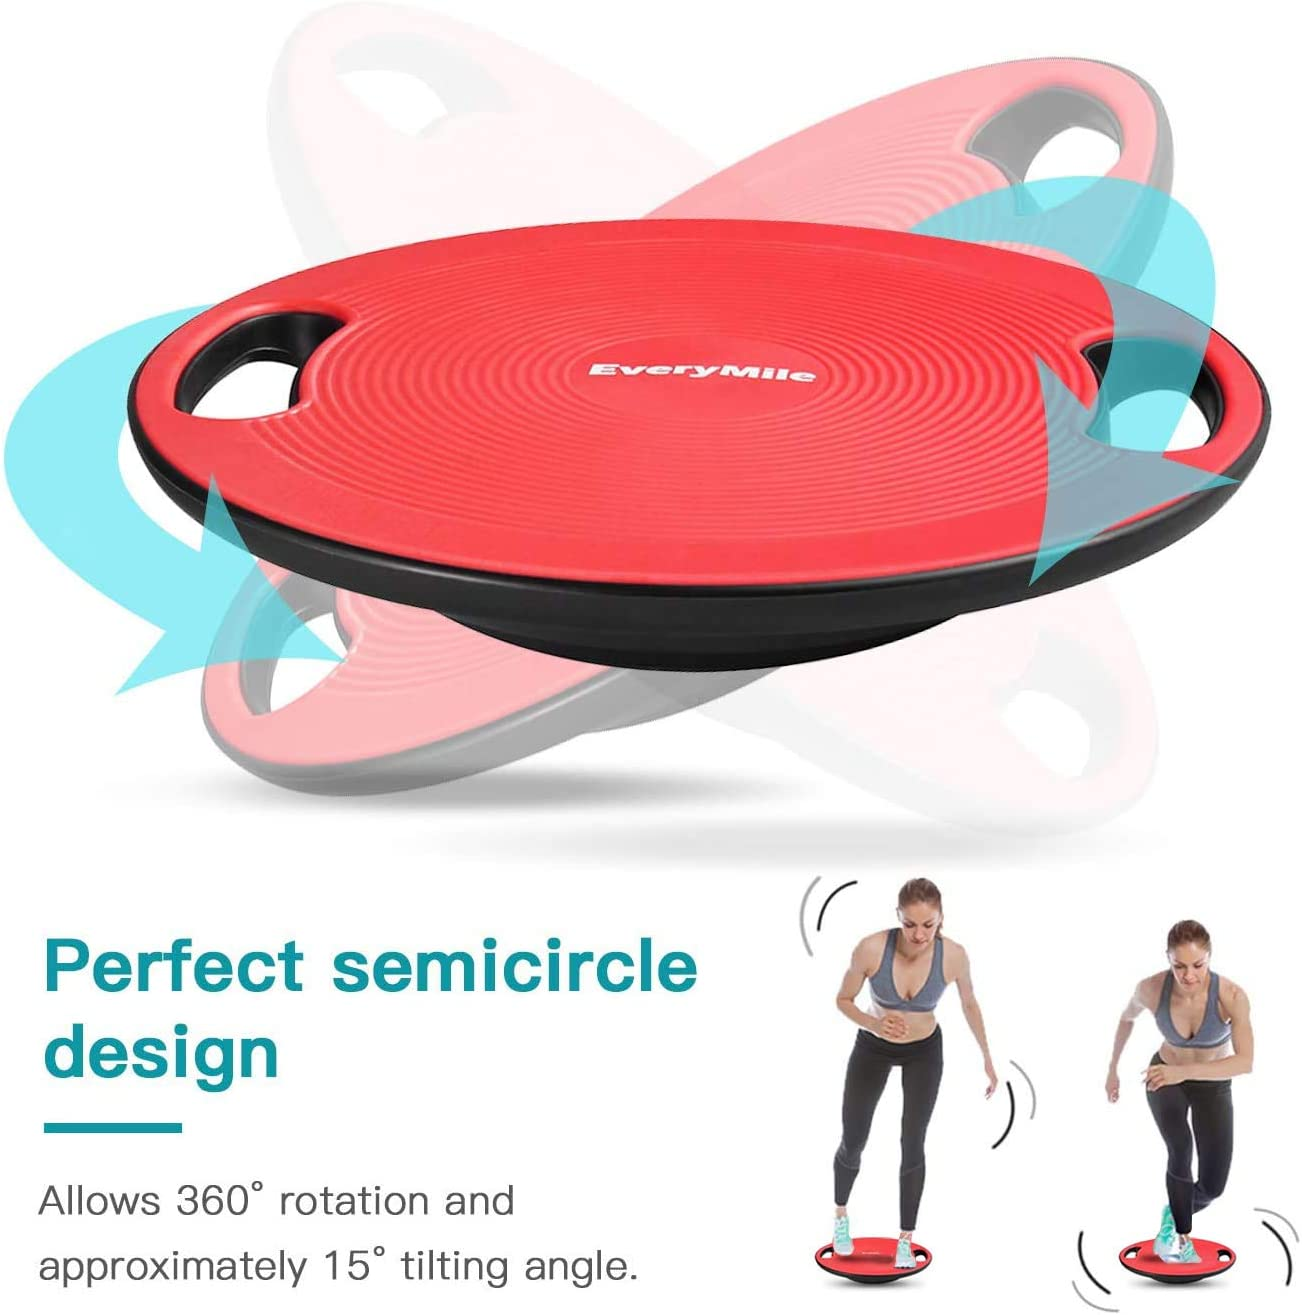 EveryMile Wobble Balance Board Exercise Balance Stability Trainer with Handles